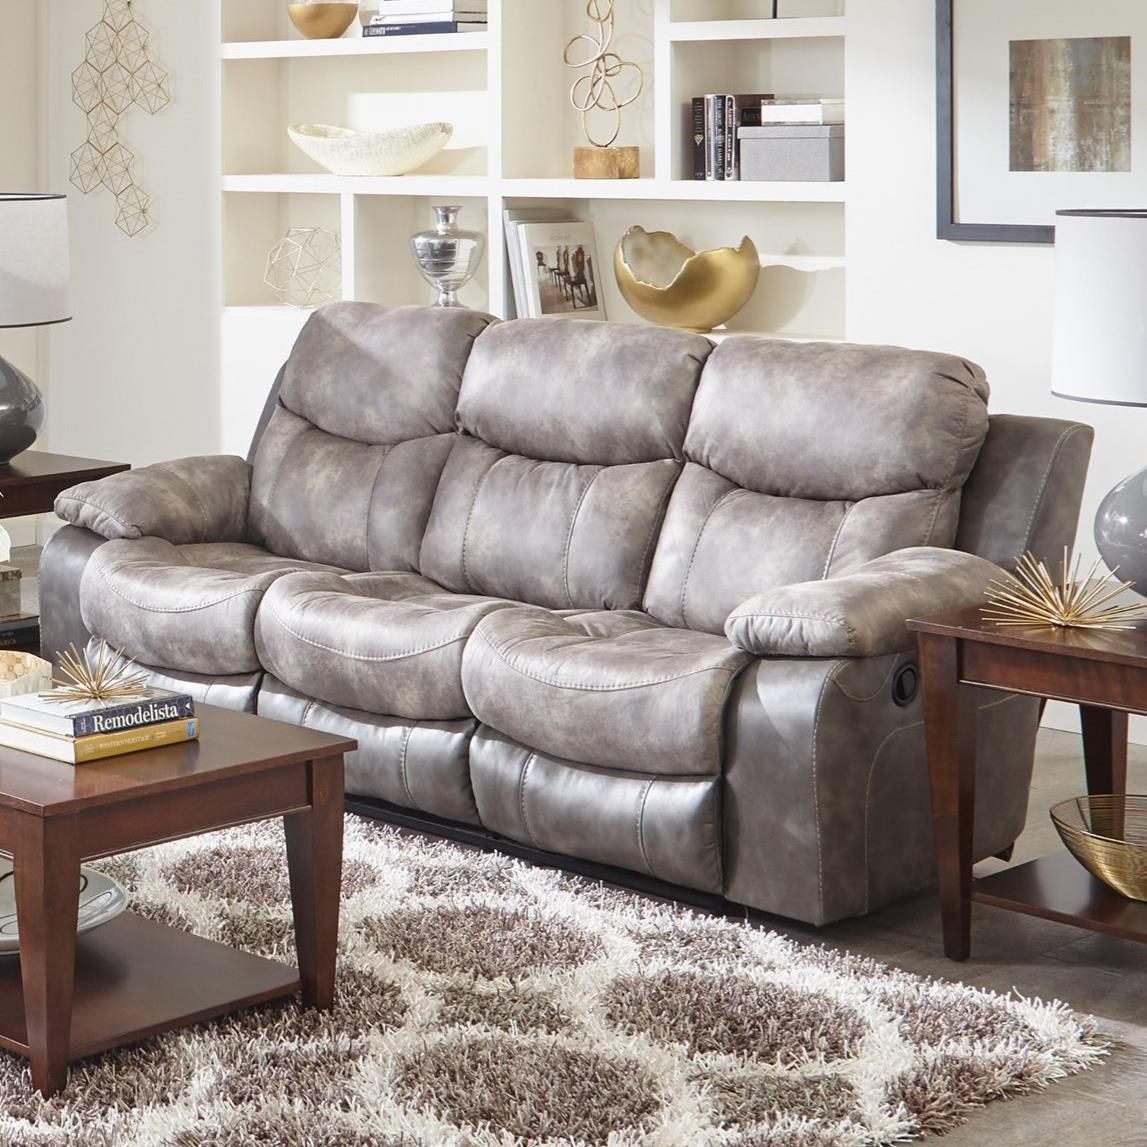 Catnapper henderson reclining sofa with drop down table lindys catnapper henderson reclining sofa with drop down table item number 4355 steel geotapseo Choice Image